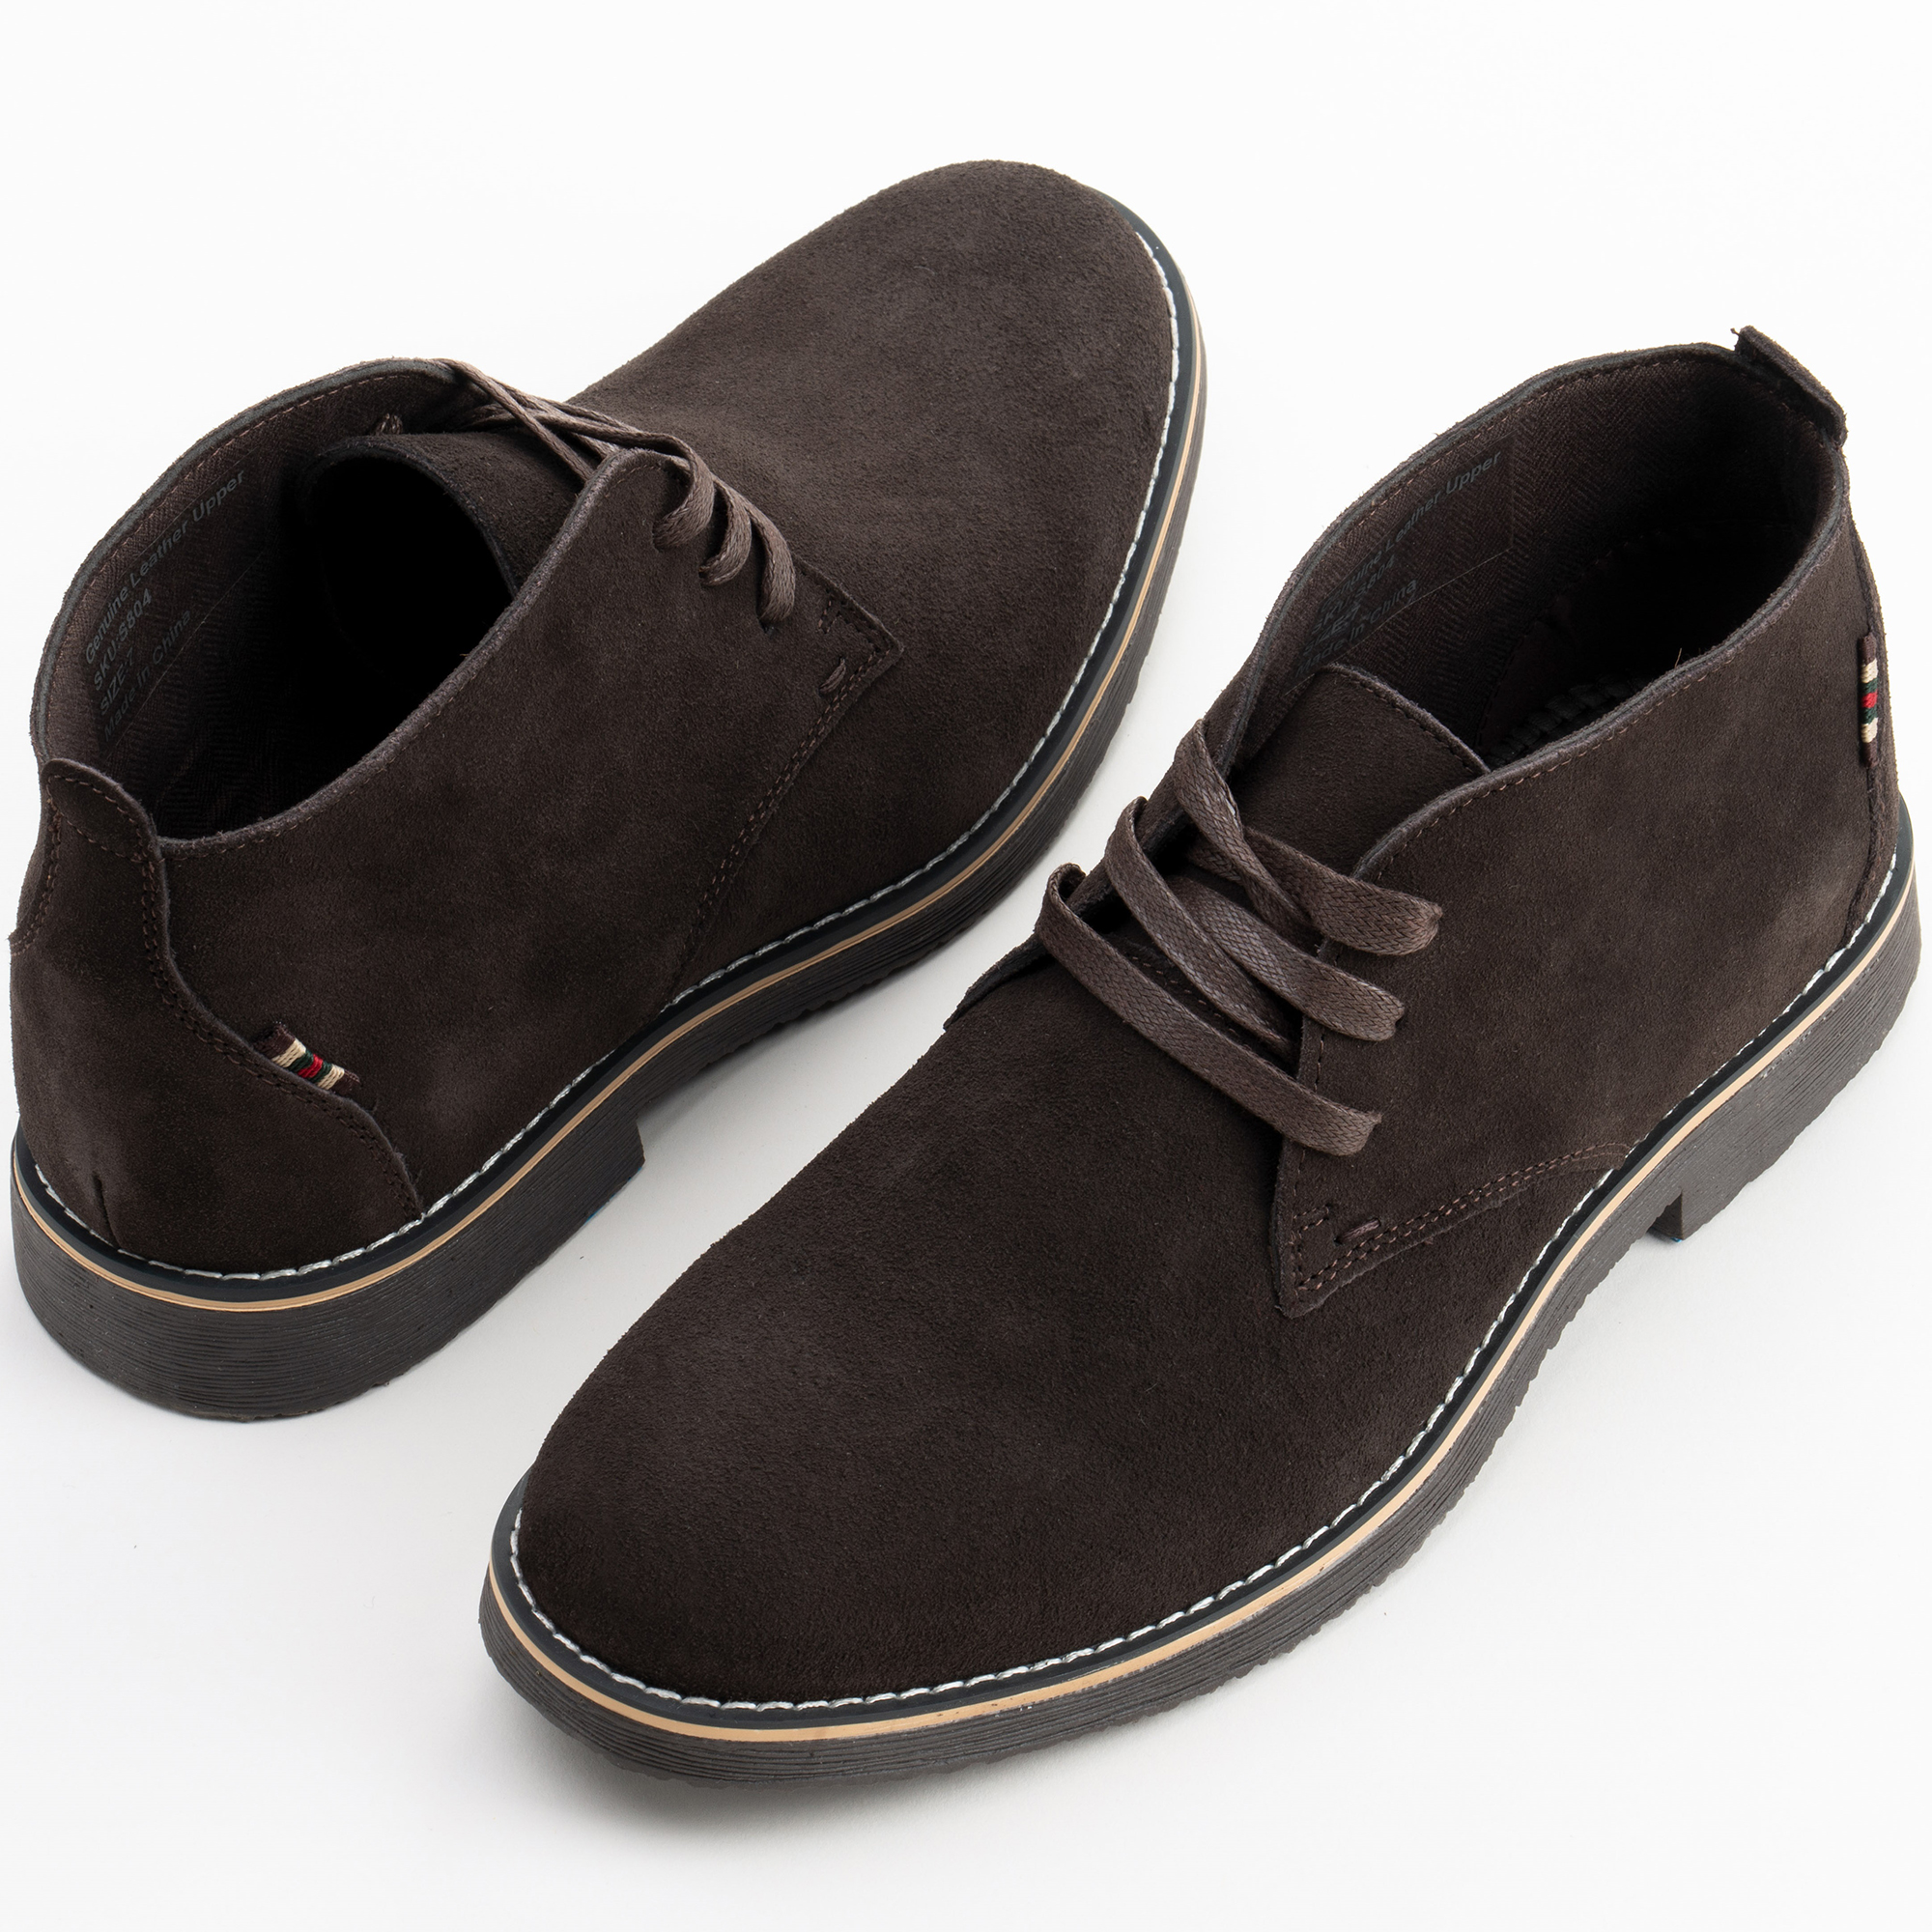 Alpine-Swiss-Beck-Mens-Suede-Chukka-Desert-Boots-Lace-Up-Shoes-Crepe-Sole-Oxford miniature 21